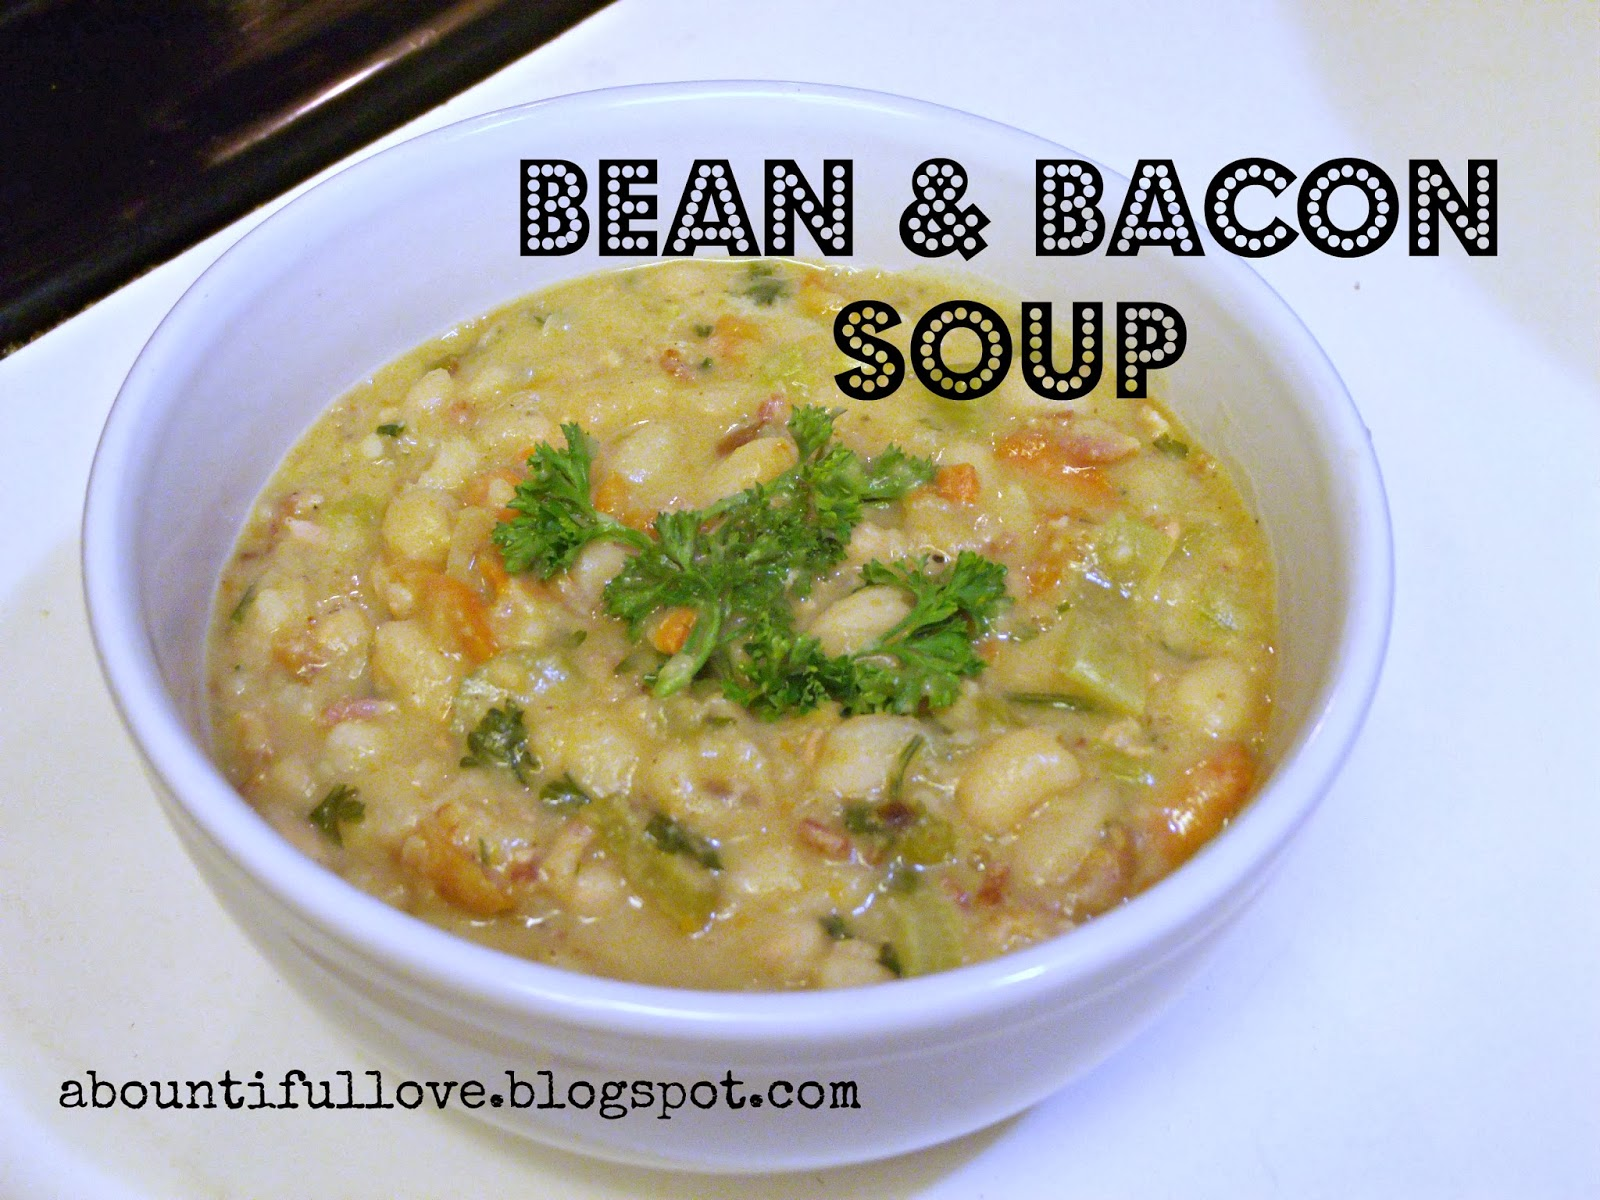 Bountiful Love: Homemade Bean and Bacon Soup